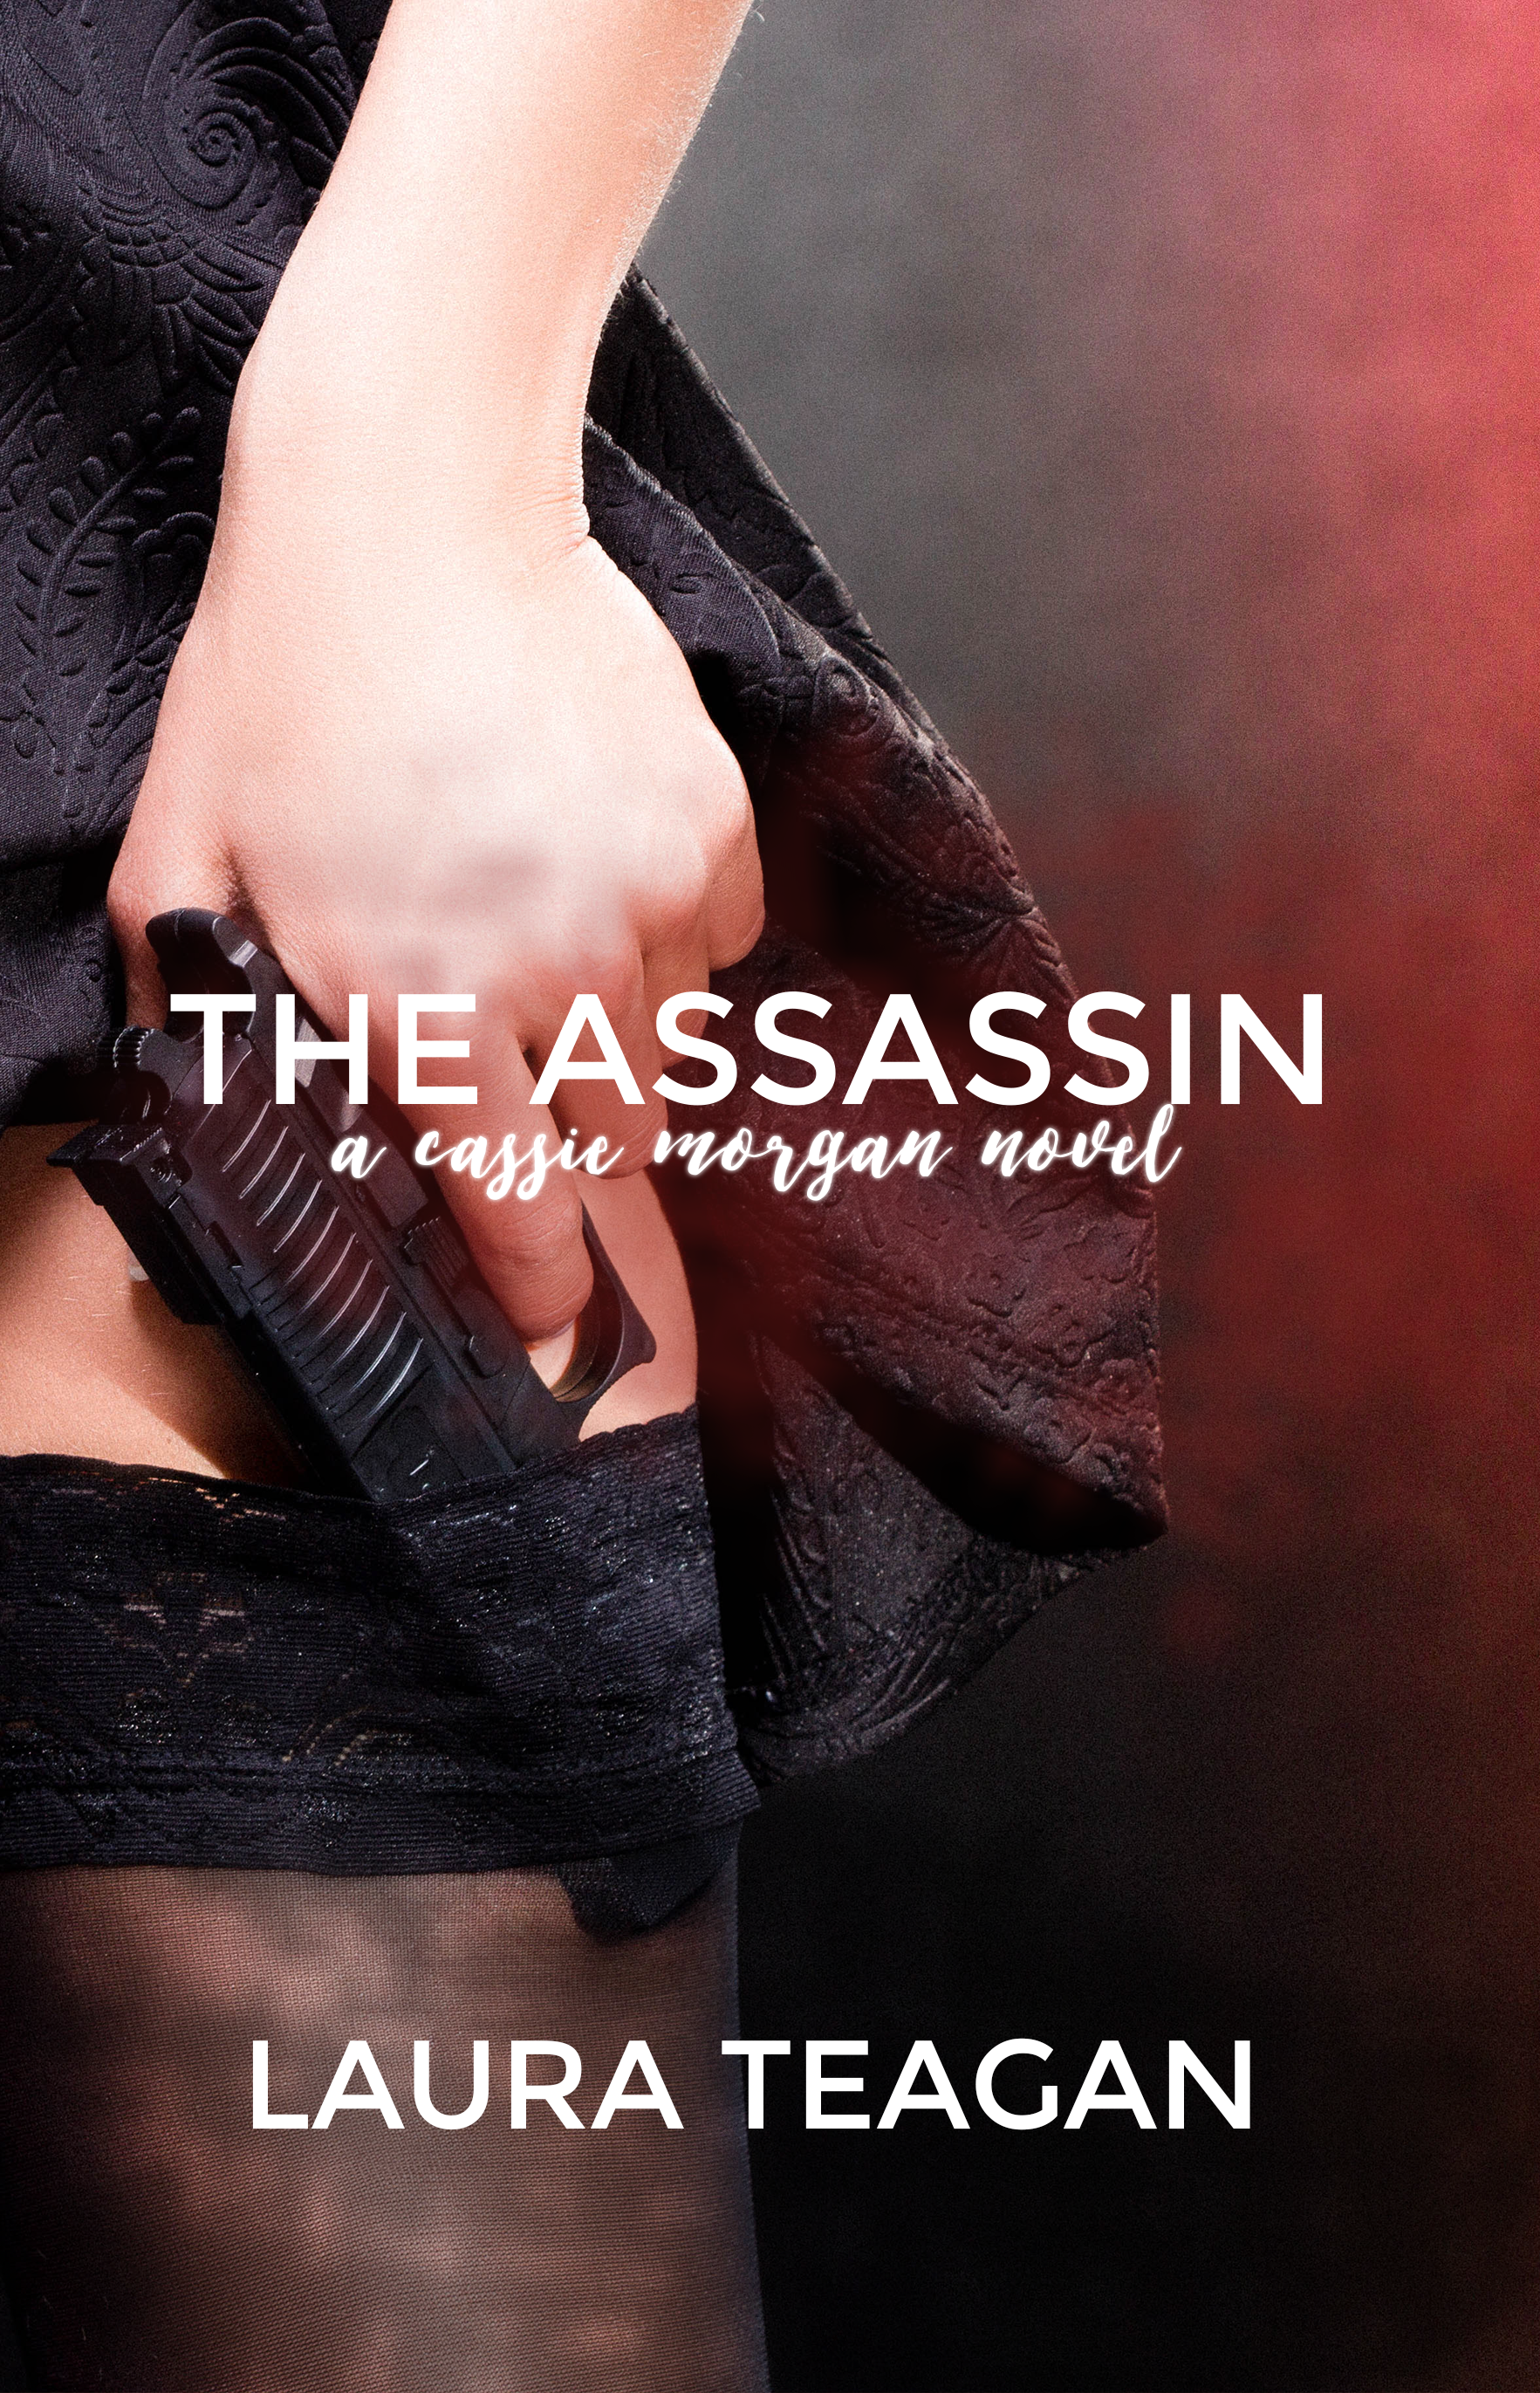 Read THE ASSASSIN NOW